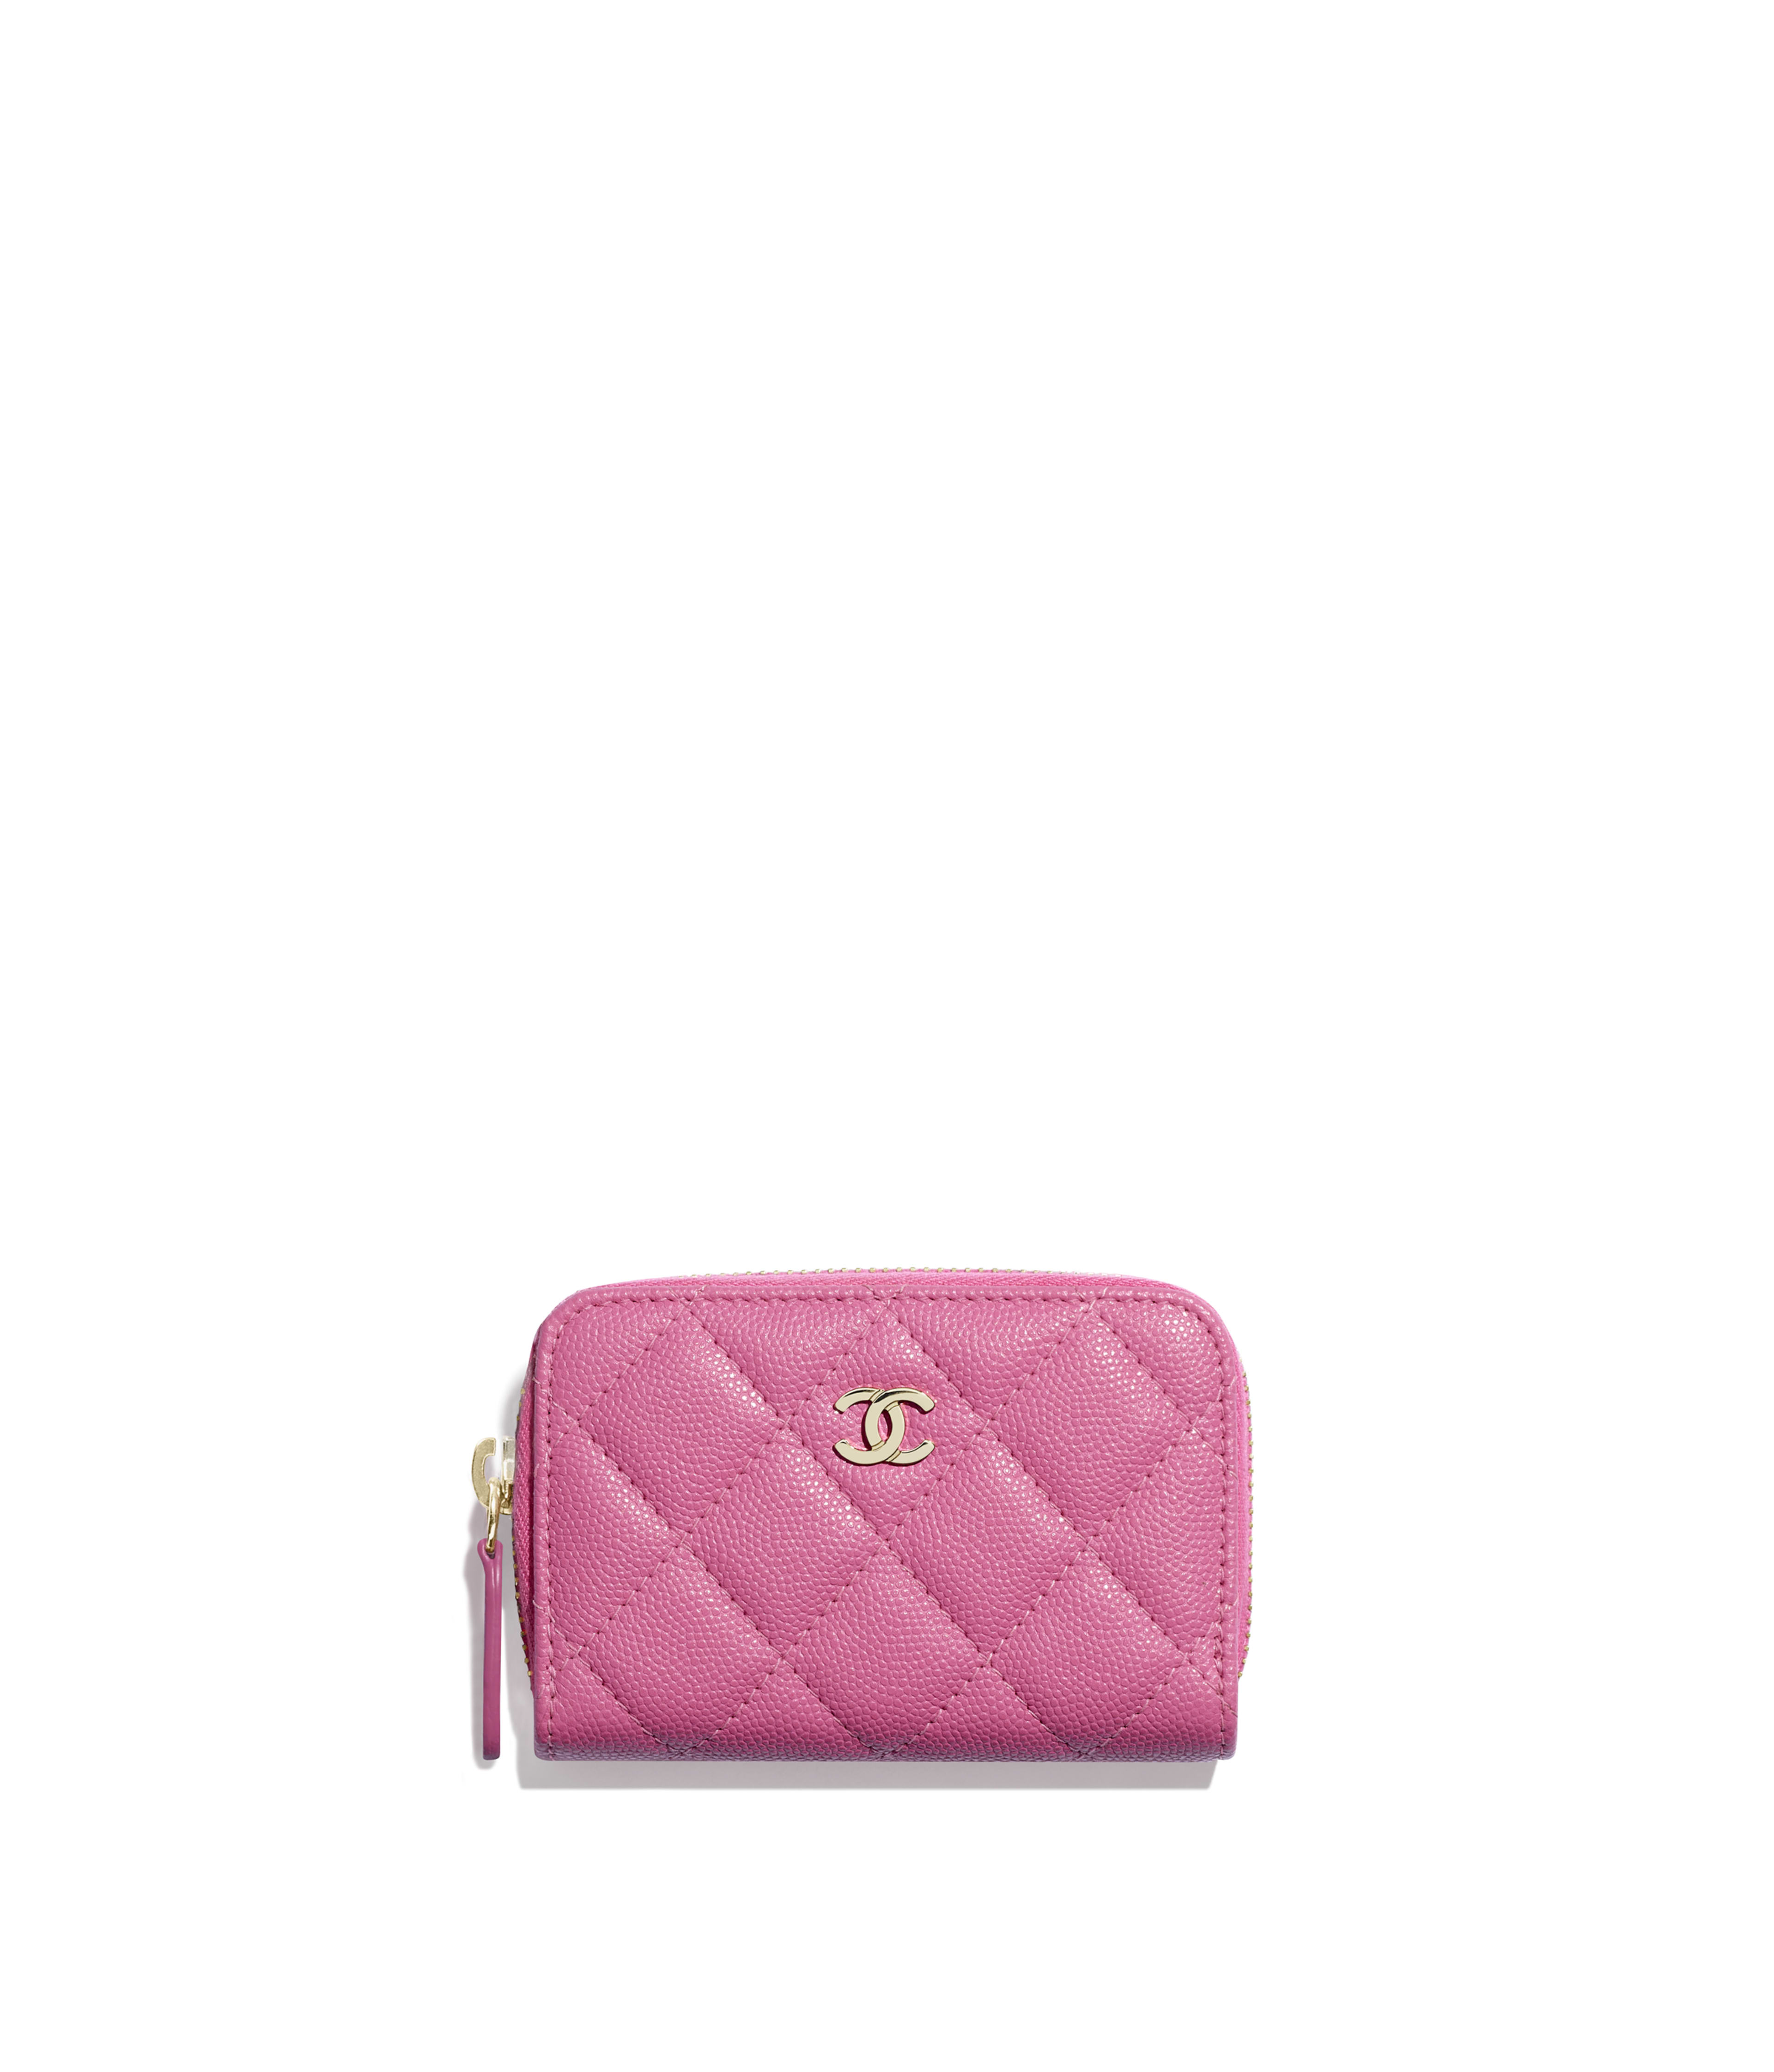 f33c342bde01a8 Classic Zipped Card Holder Grained Calfskin & Gold-Tone Metal, Pink Ref.  A84511Y333525B648